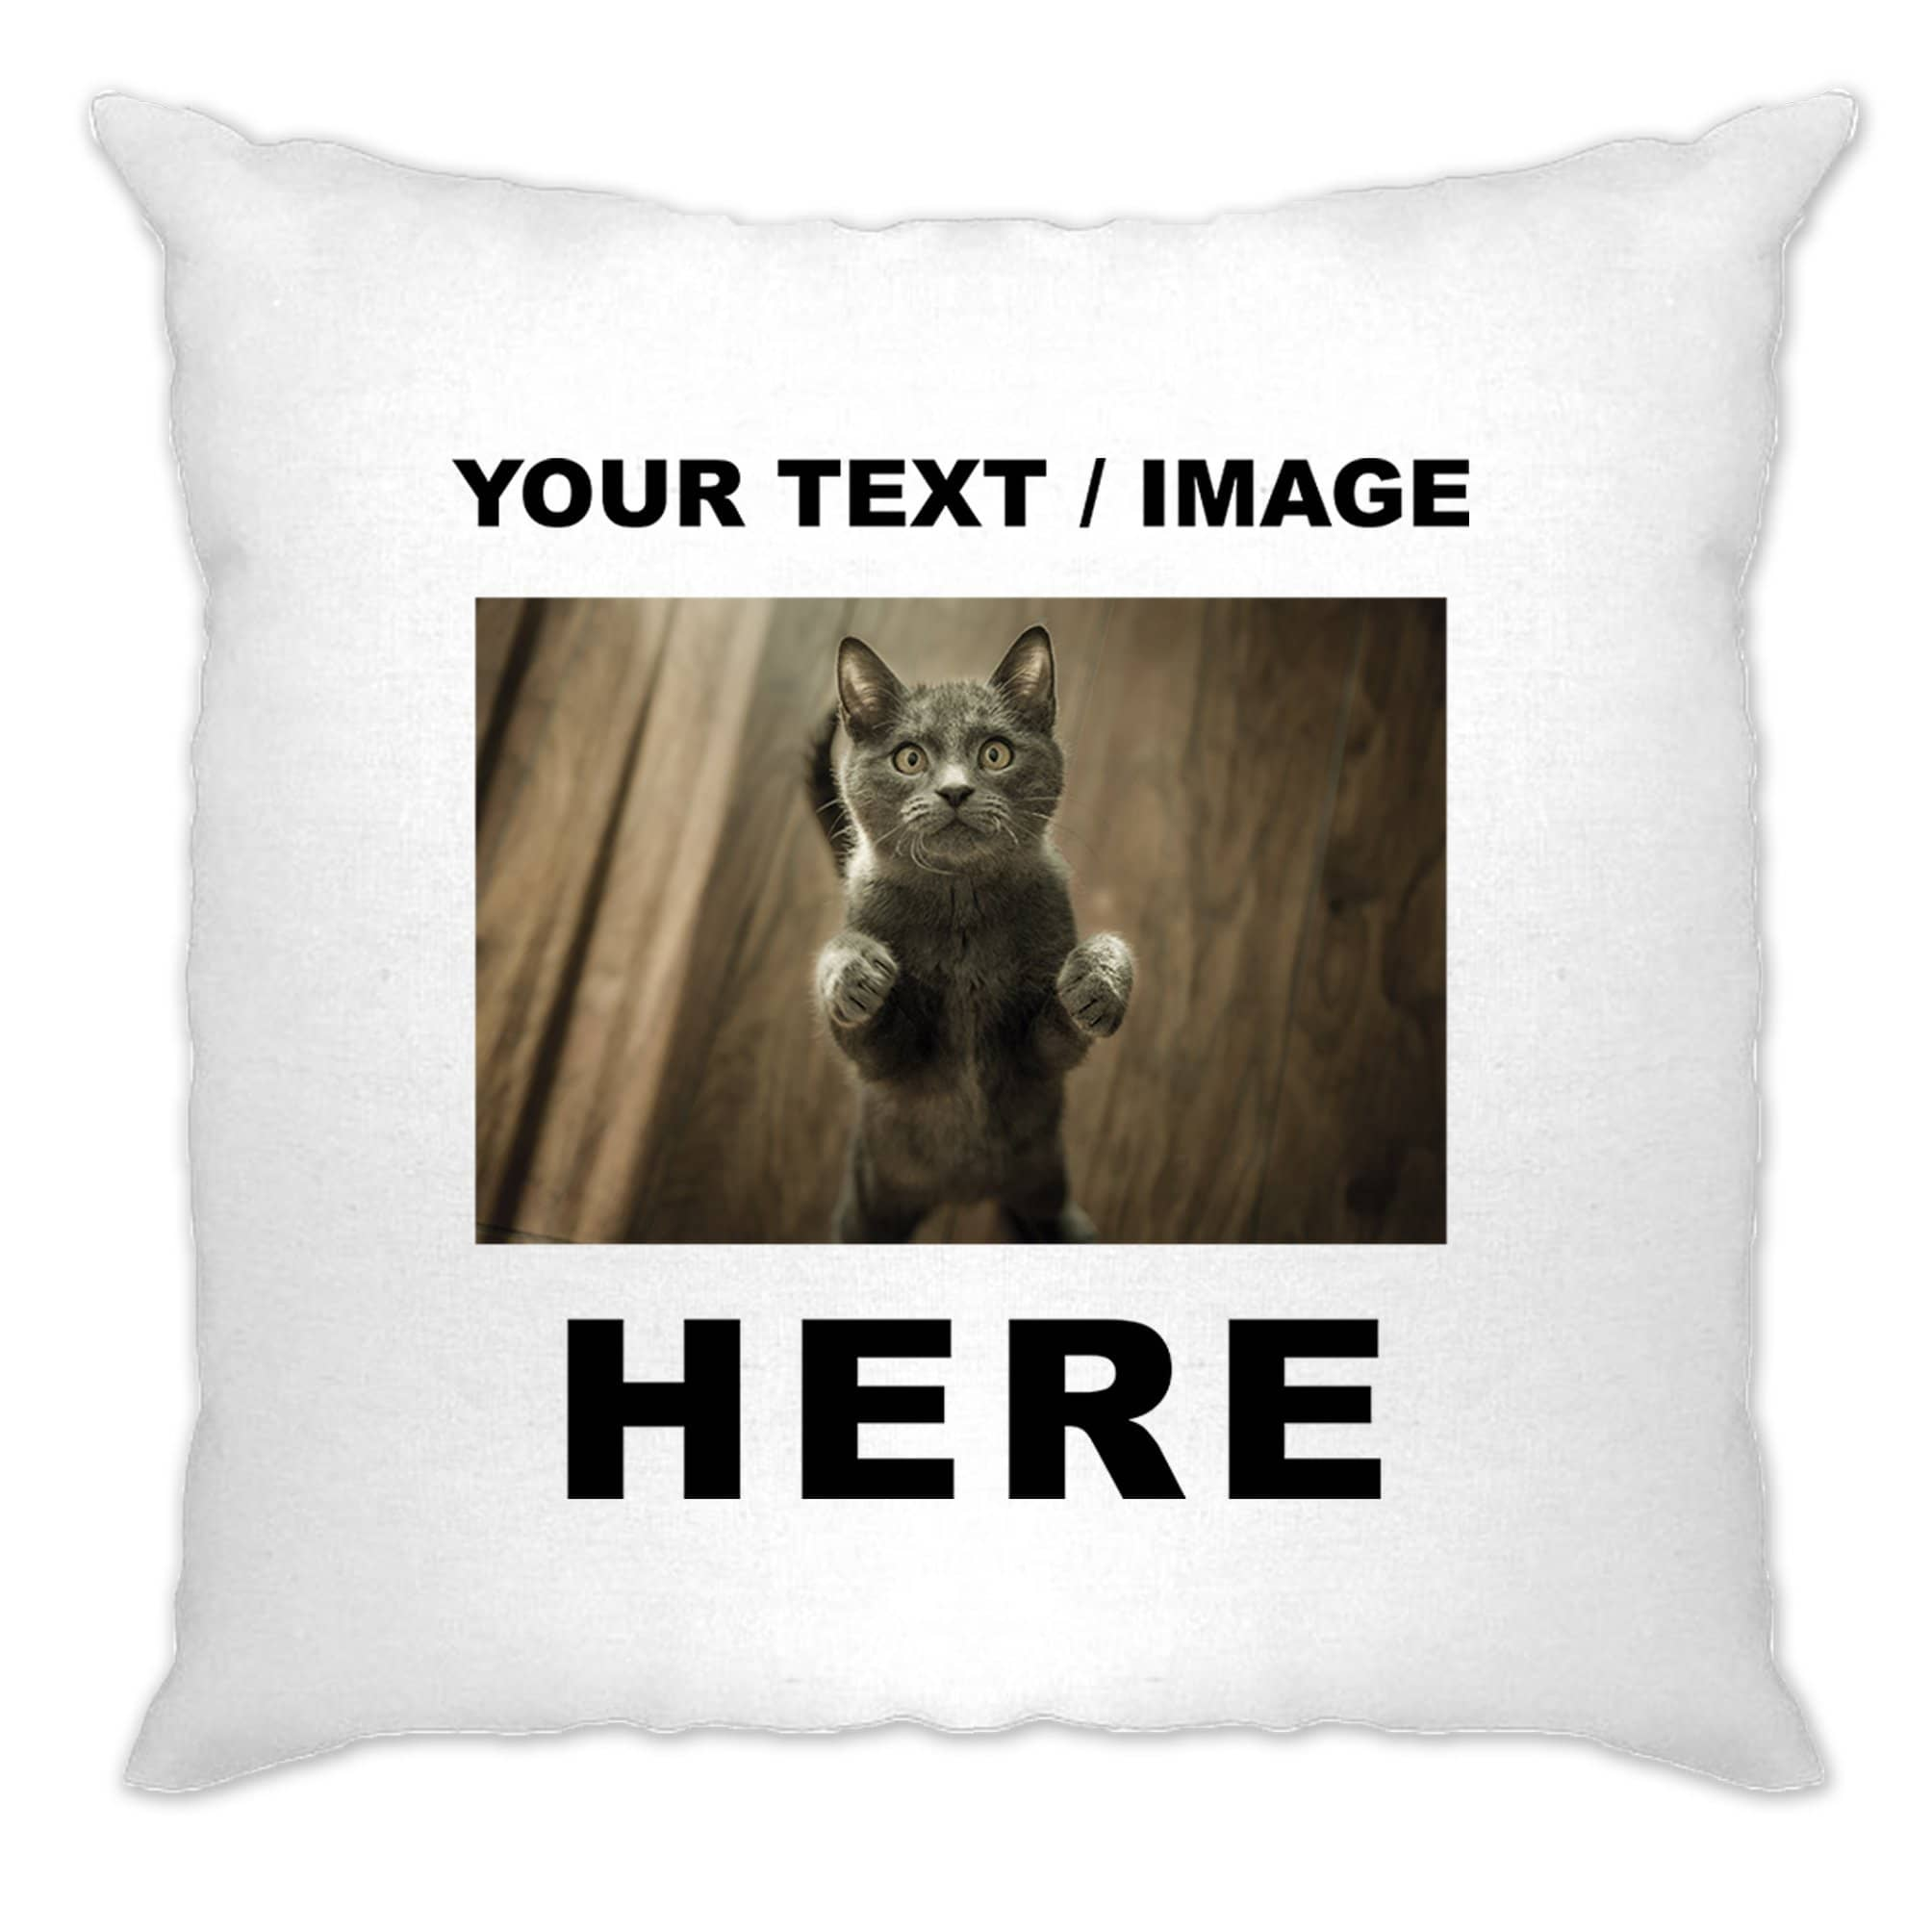 Custom Printed Cushion Cover with Your Text or Image